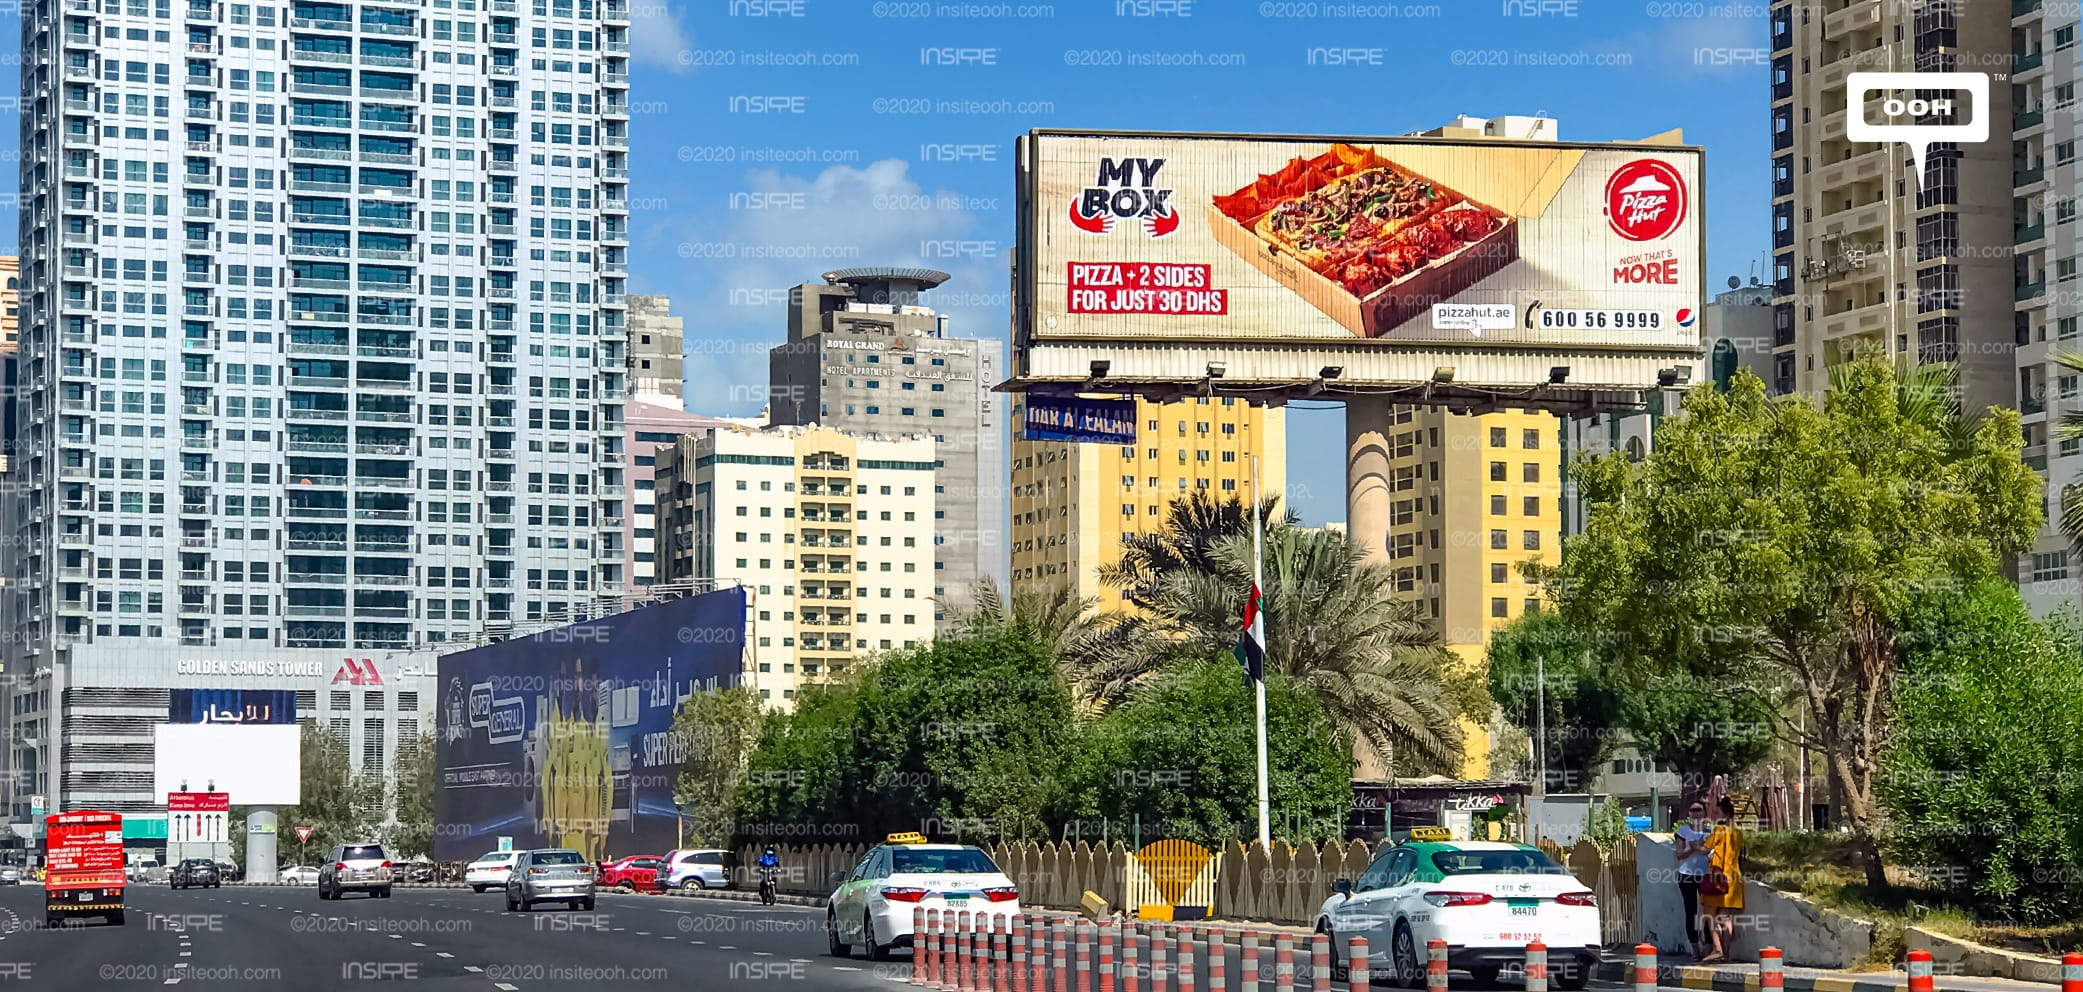 Pizza Hut Arrives At Uae S Billboards With The Convenient My Box Deals Insite Ooh Media Platform Outdoor Advertising Campaigns